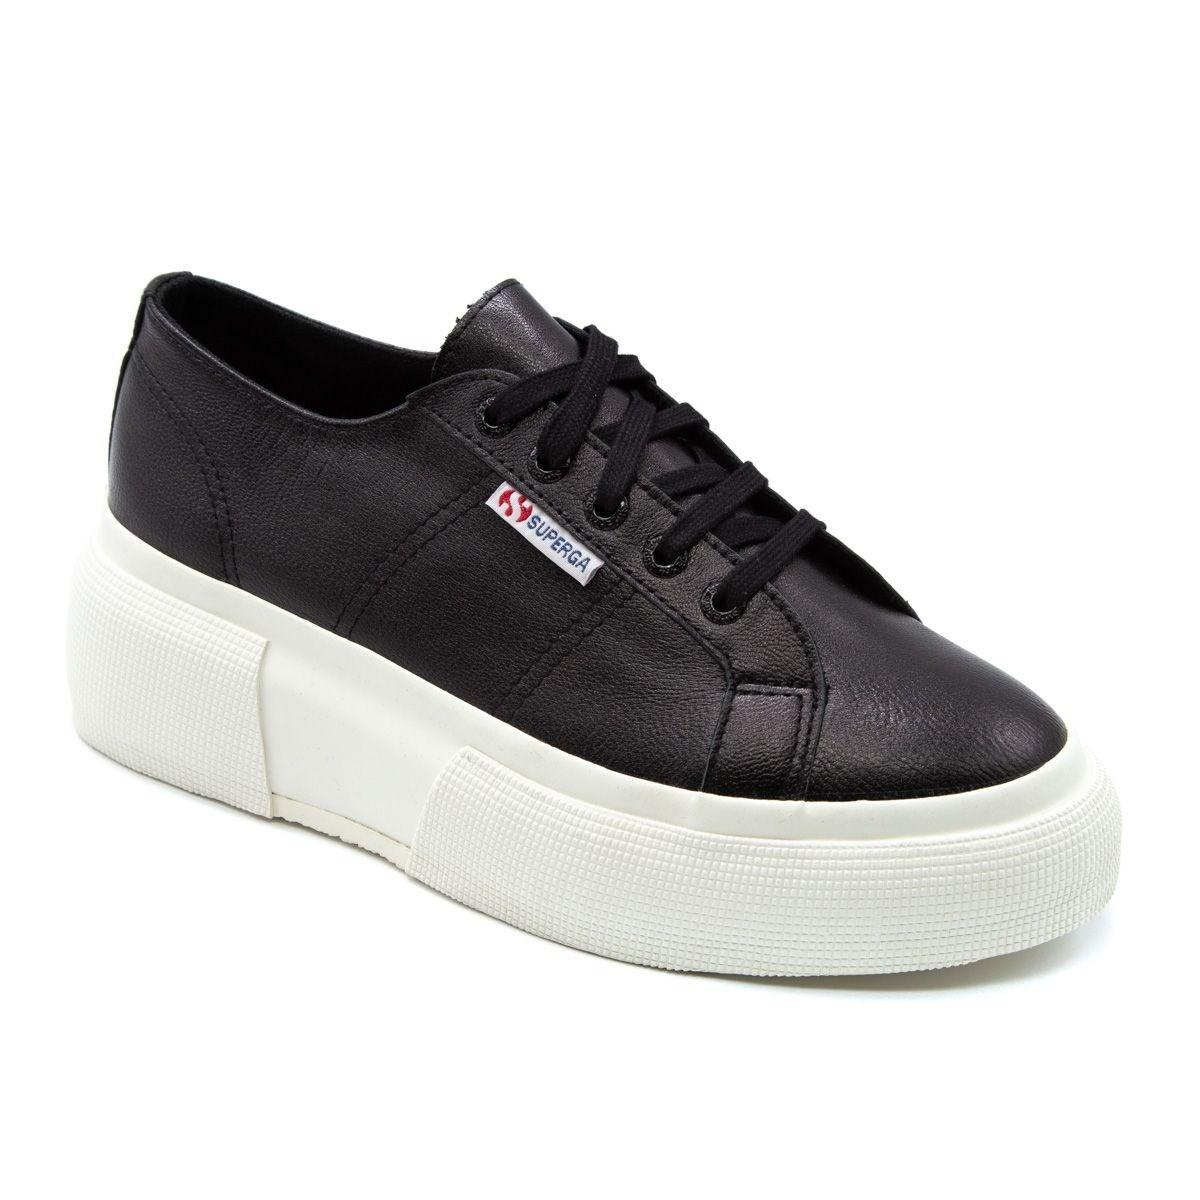 Superga - Women s S00dq70999 Black Leather Sneakers - Lyst. View fullscreen 3303bd24a